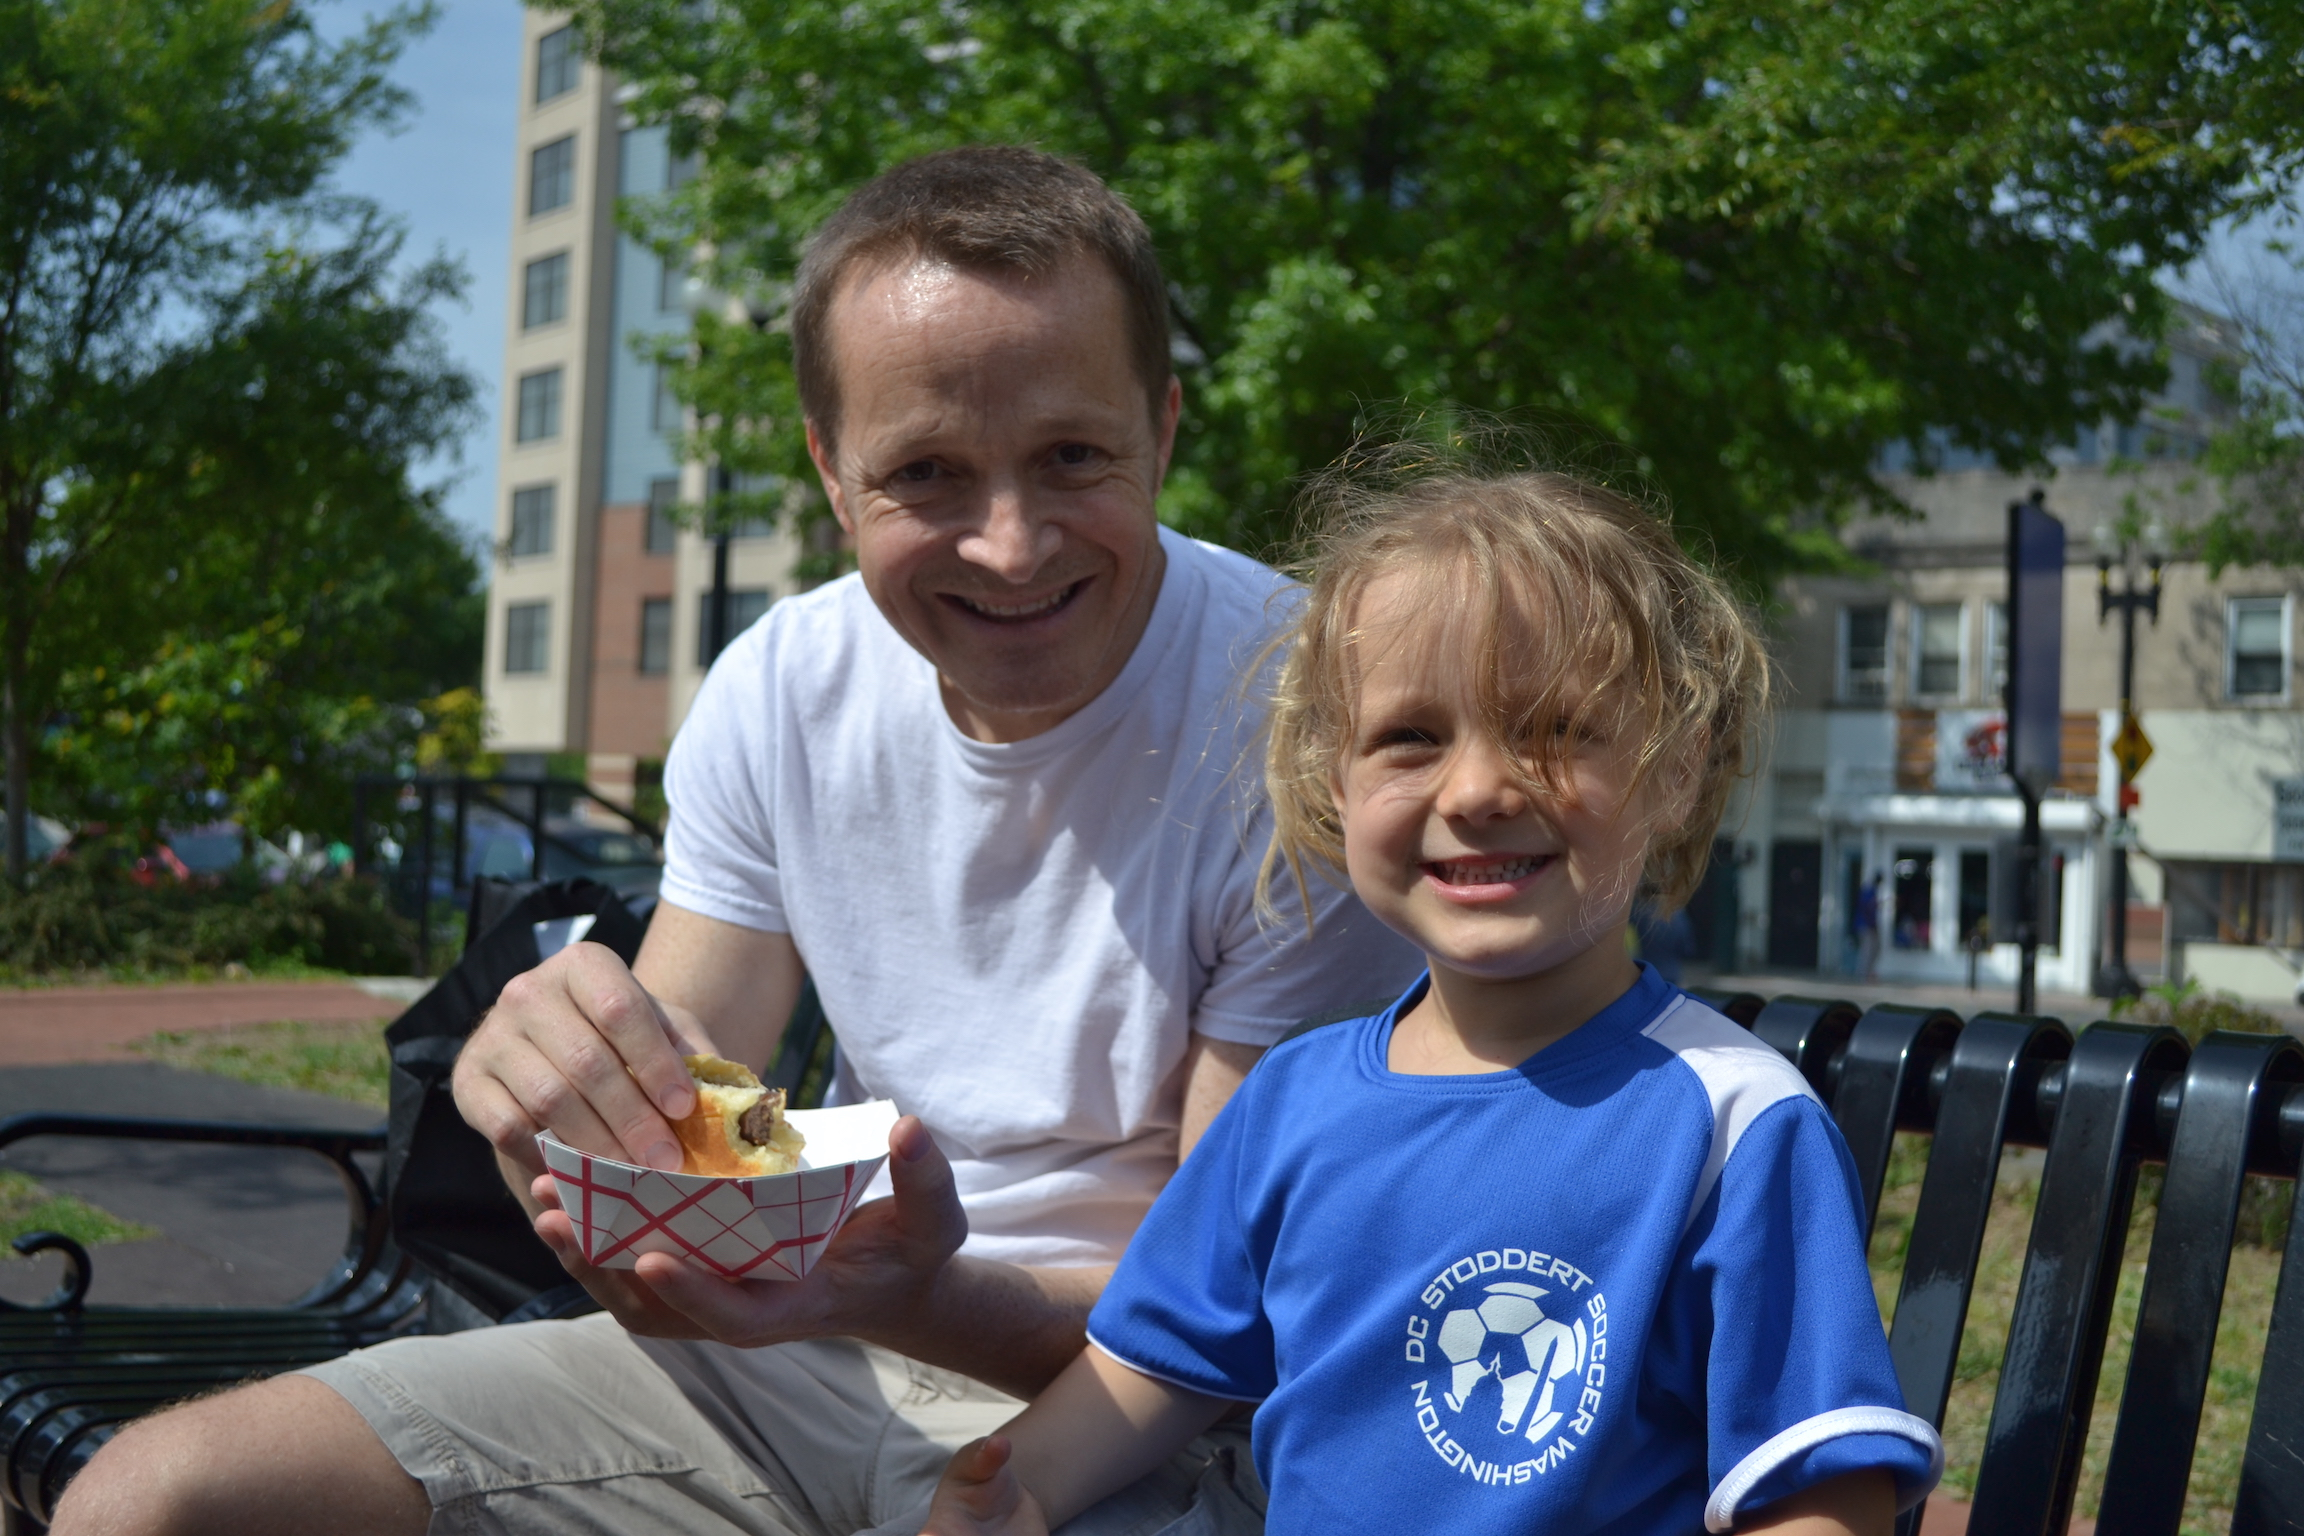 Marcus Carpenter and his daughter enjoying a Meat Crafters sausage.